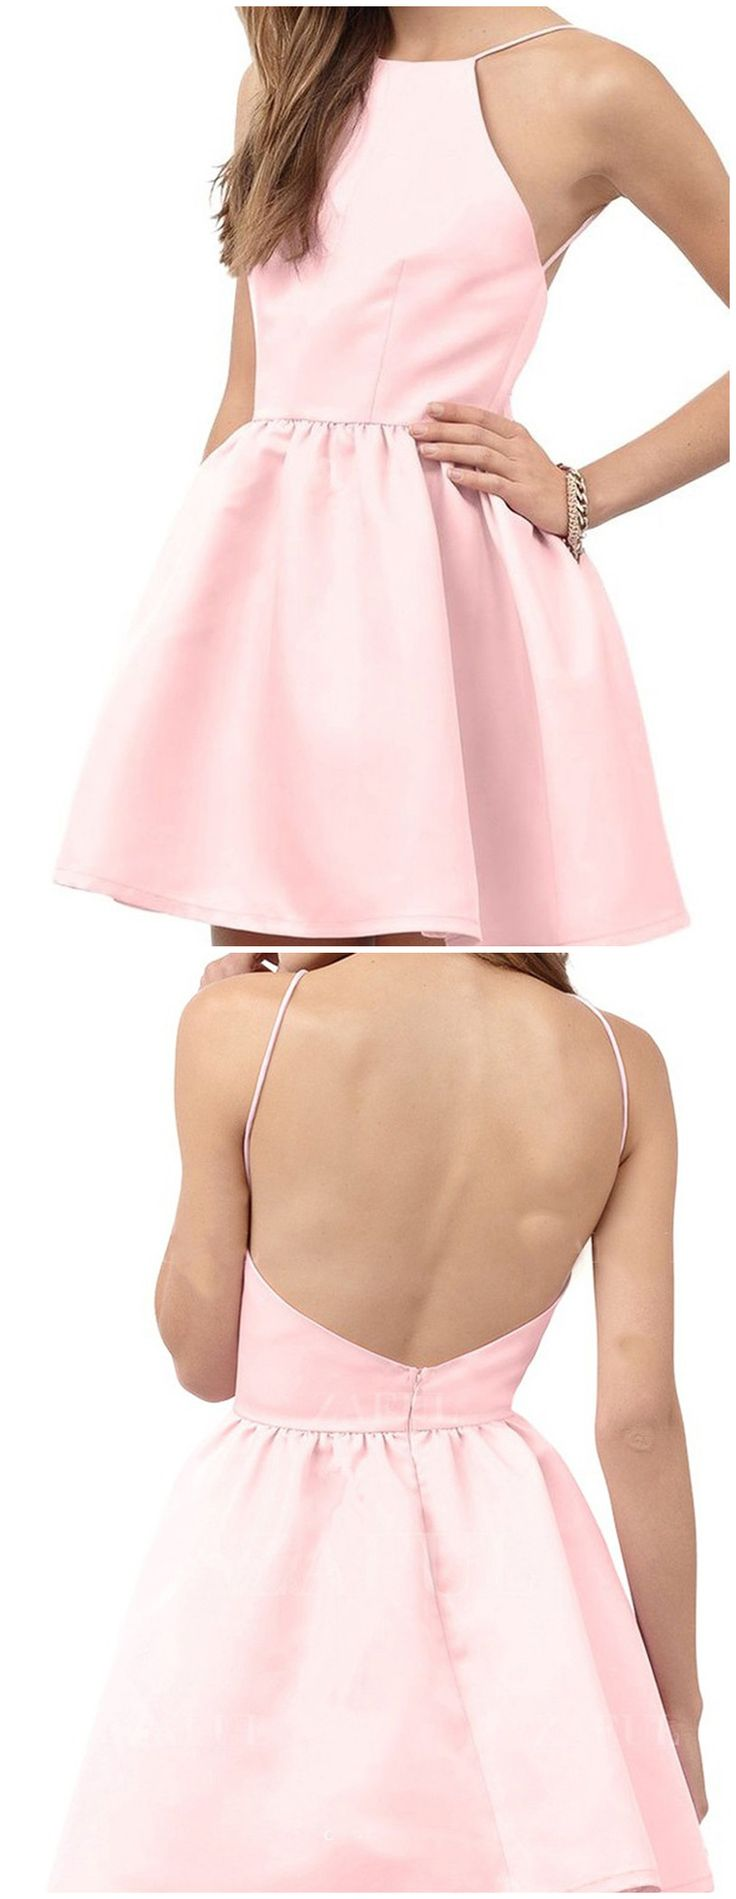 homecoming dresses,cheap homecoming dresses,pink homecoming dresses,open back homecoming dresses,short prom dresses